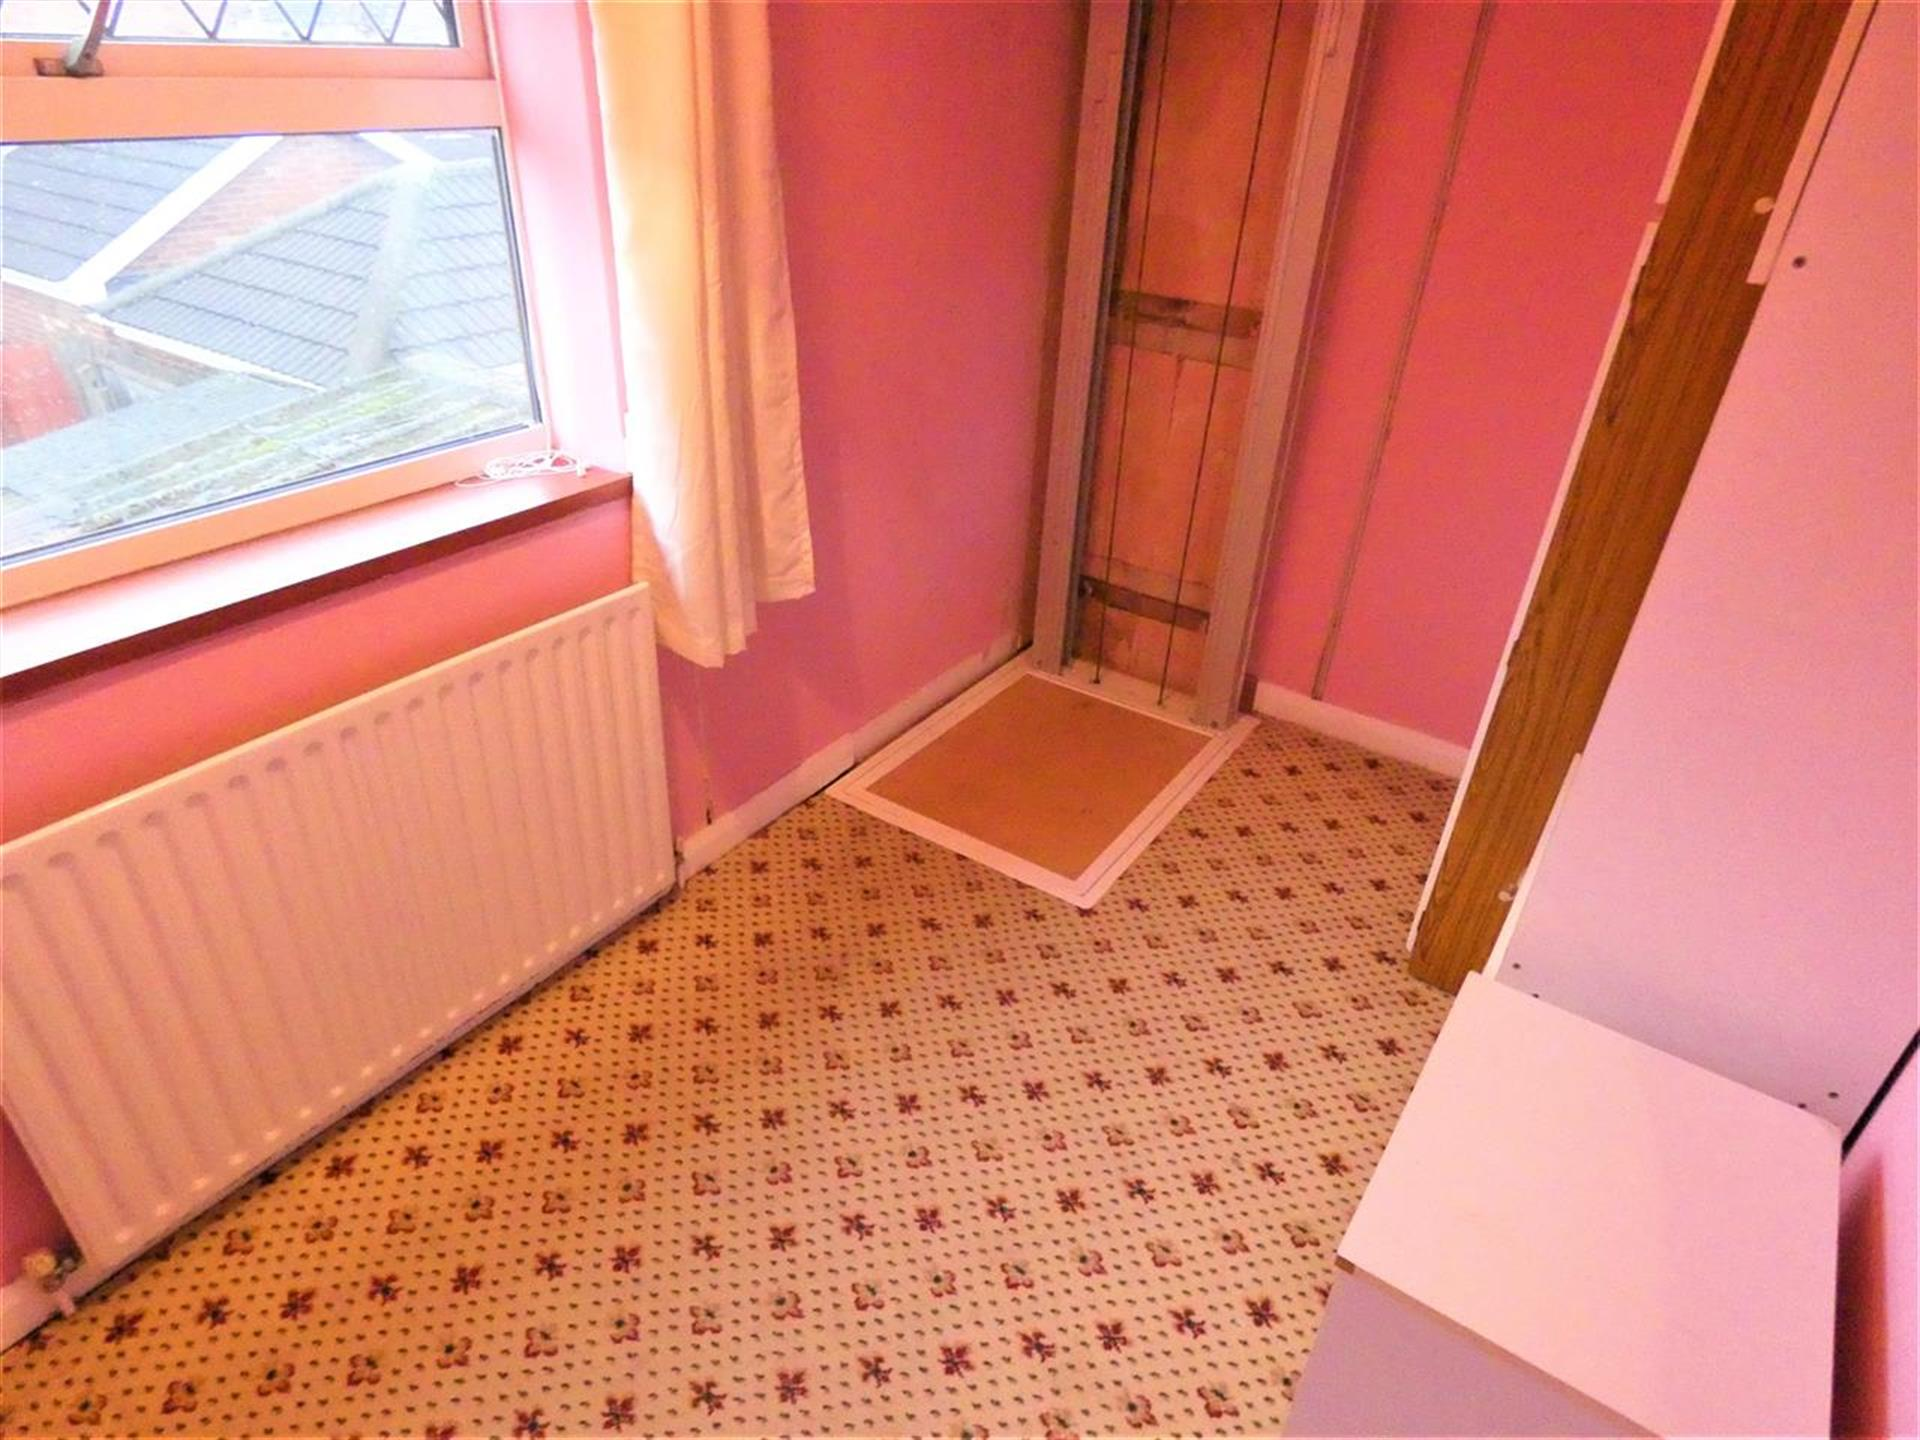 4 Bedroom End Terraced House For Sale - Bedroom Four